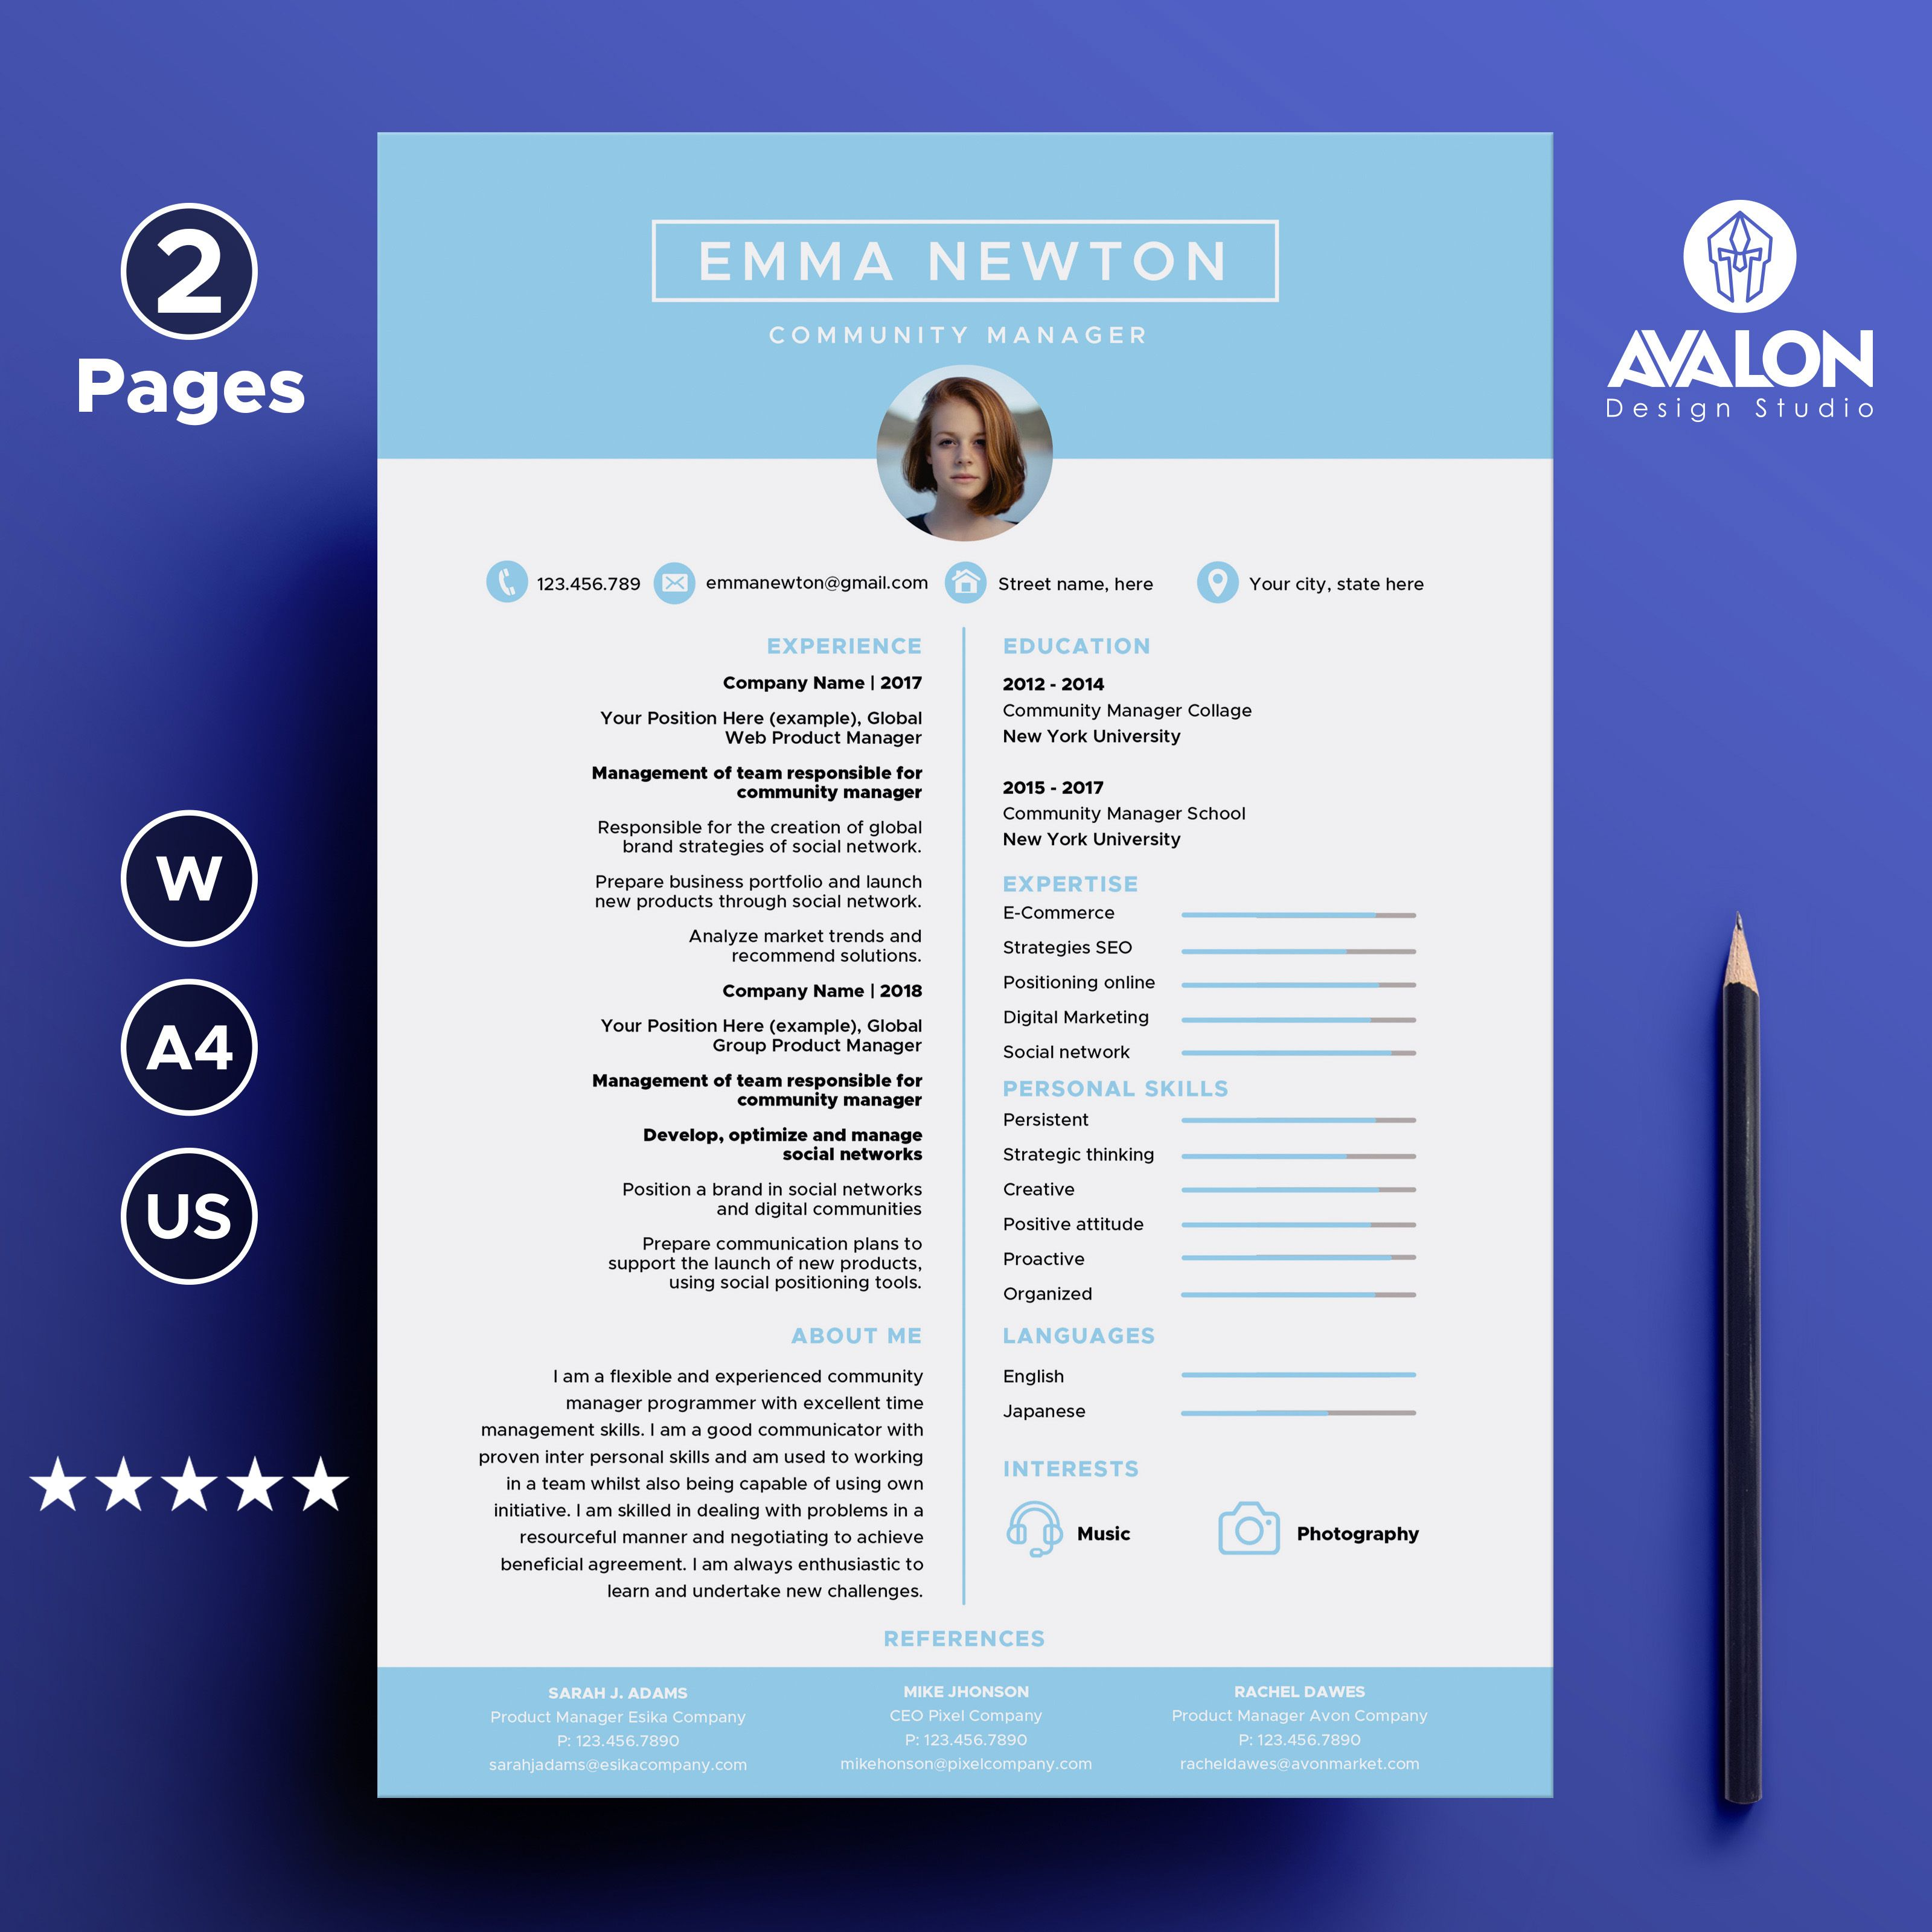 Professional Resume Template For Microsoft Word 2 Pages Creative Cv Template Instant Download Creative Cv Template Plantilla De Curriculum Plantilla Cv